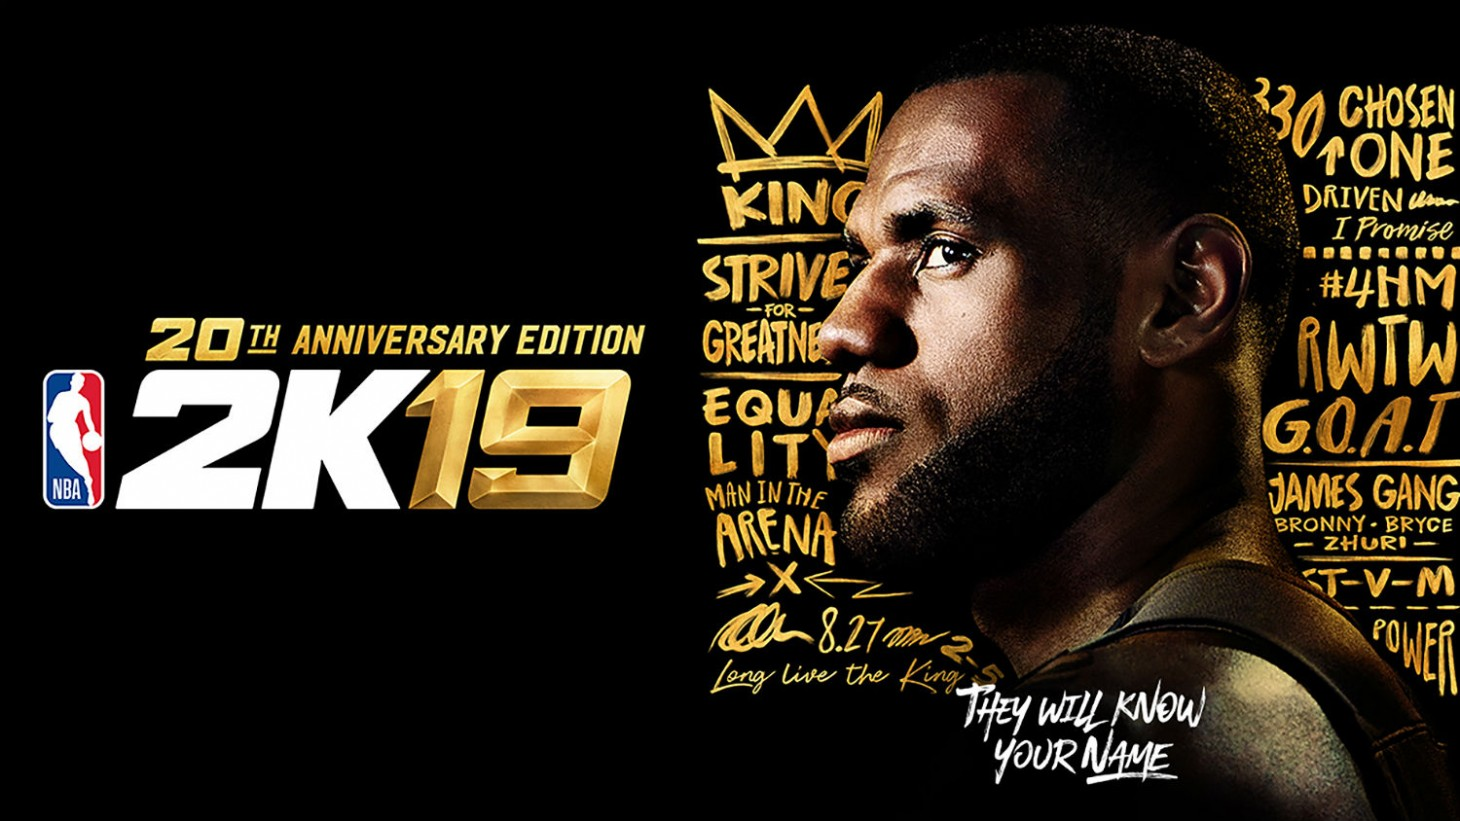 NBA 2K19 Review Roundup, Gameplay, MyTeam, Cover Star, 20th